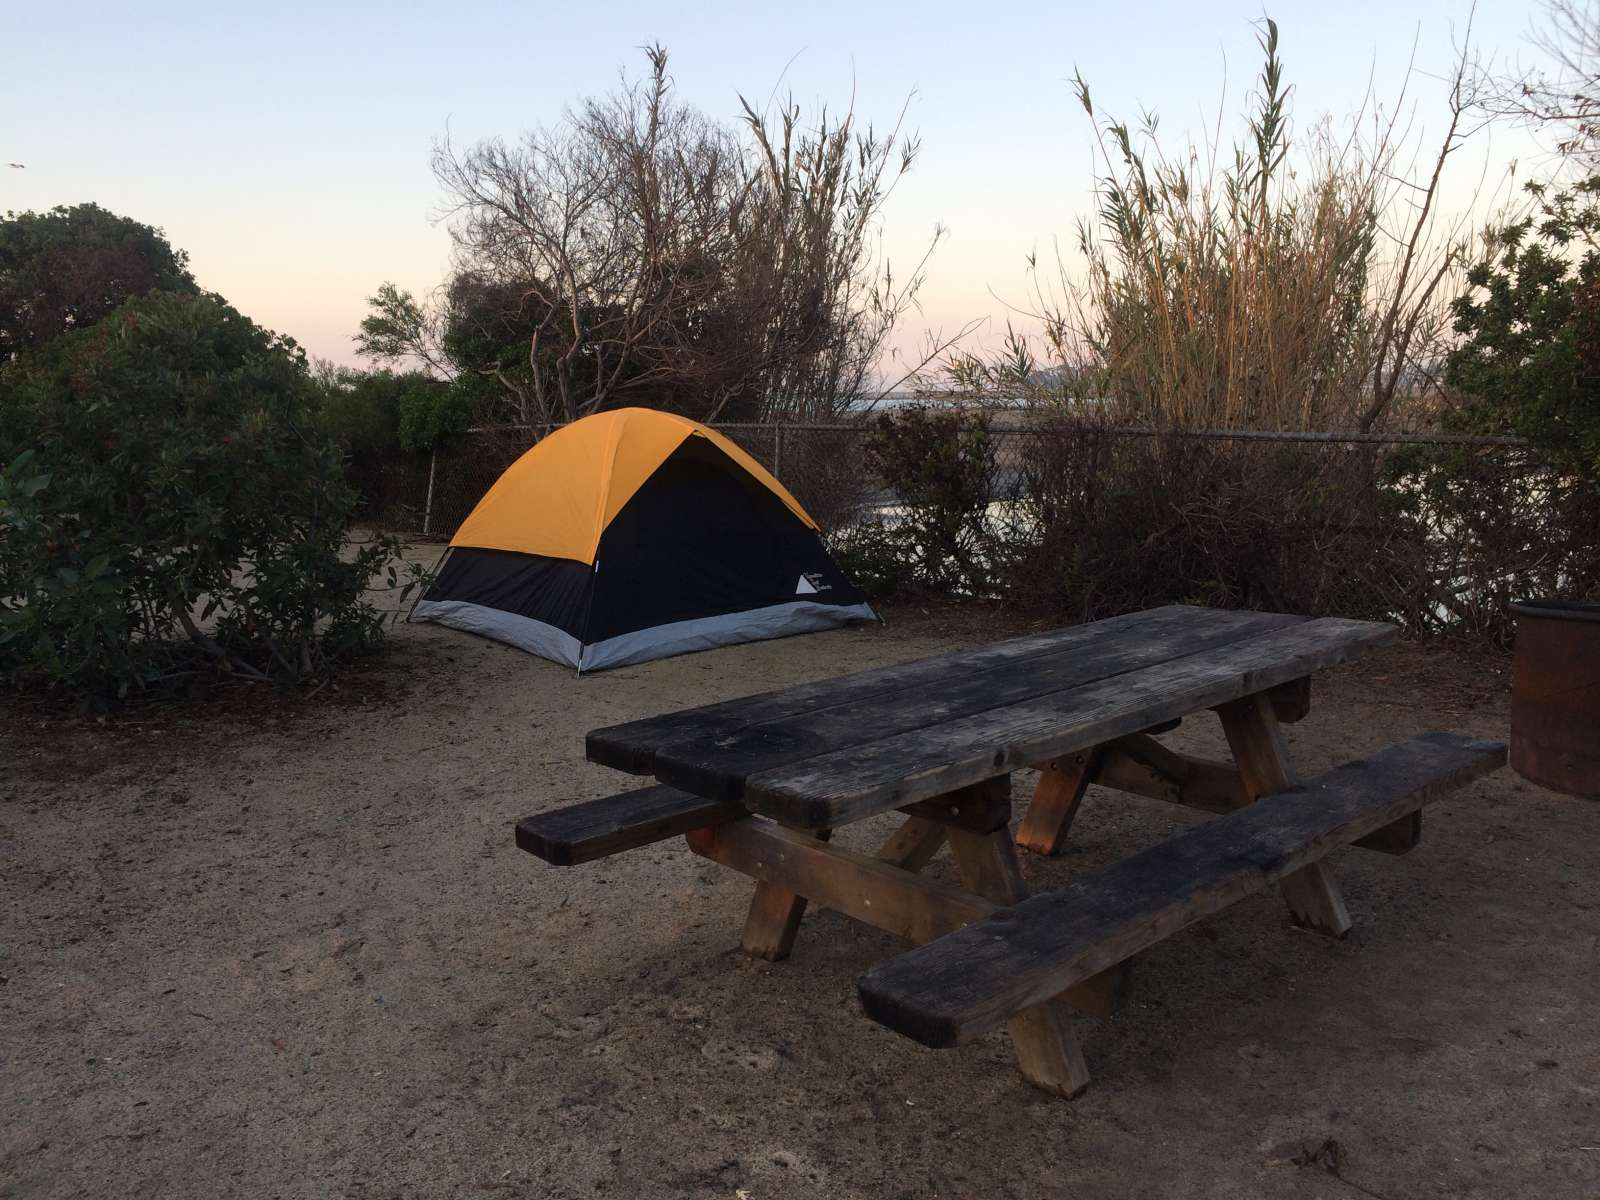 Emily S Photo At Doheny Campground